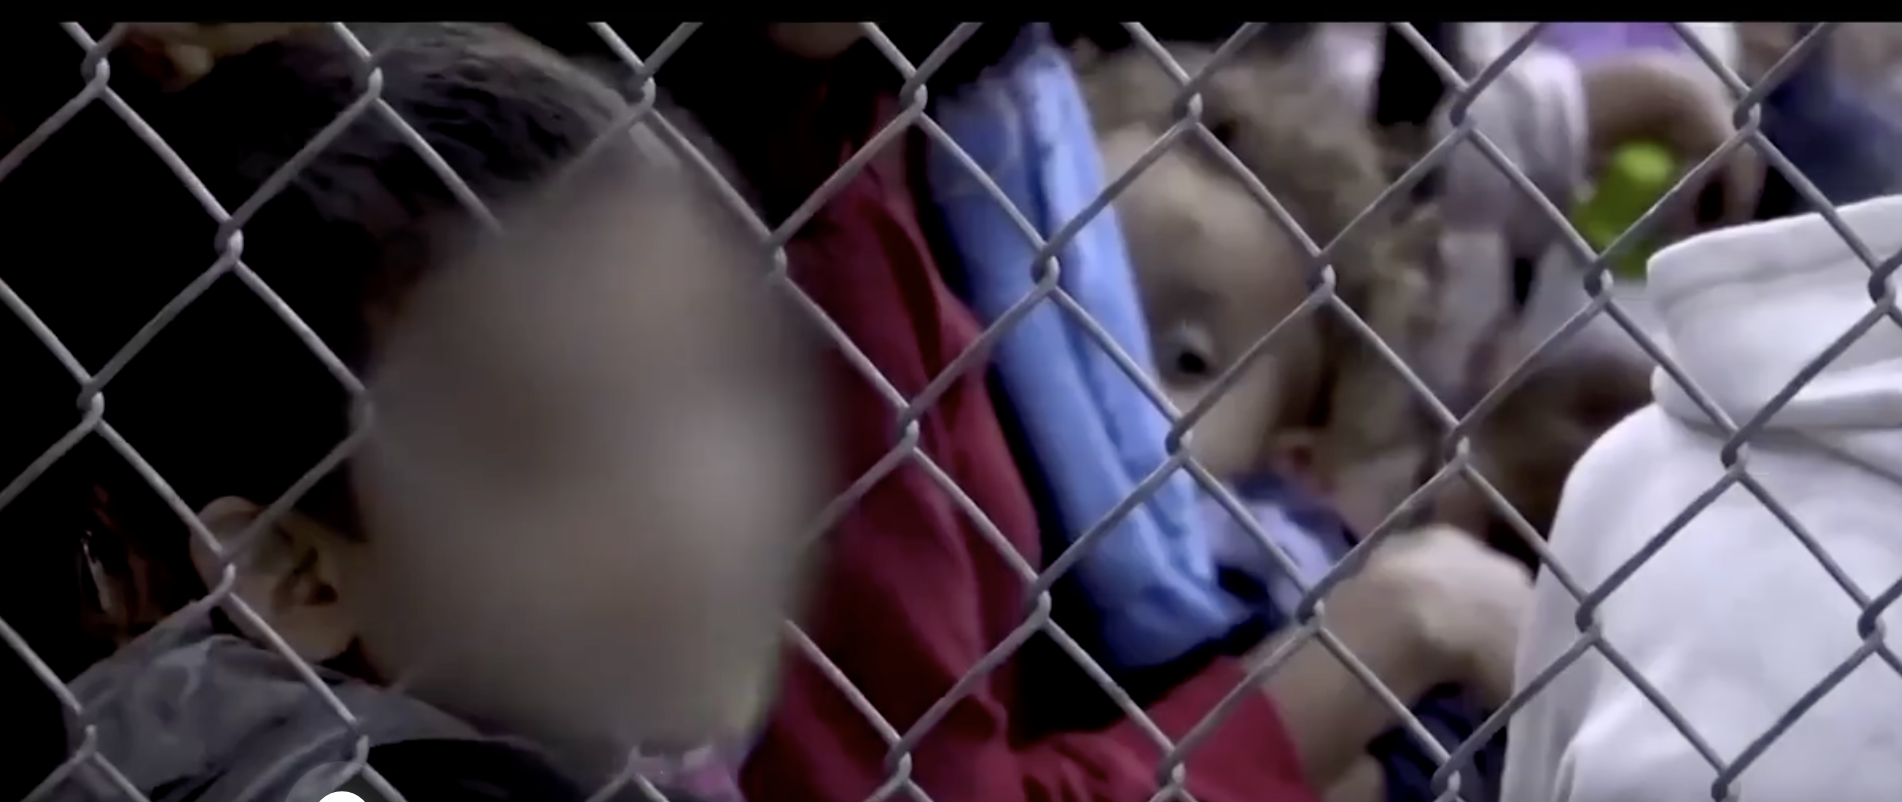 Screen-Shot-2020-10-30-at-11.31.06-AM 'The Lincoln Project' Delivers Friday Gut-Punch To Trump With New Video Child Abuse Civil Rights Featured Politics Top Stories